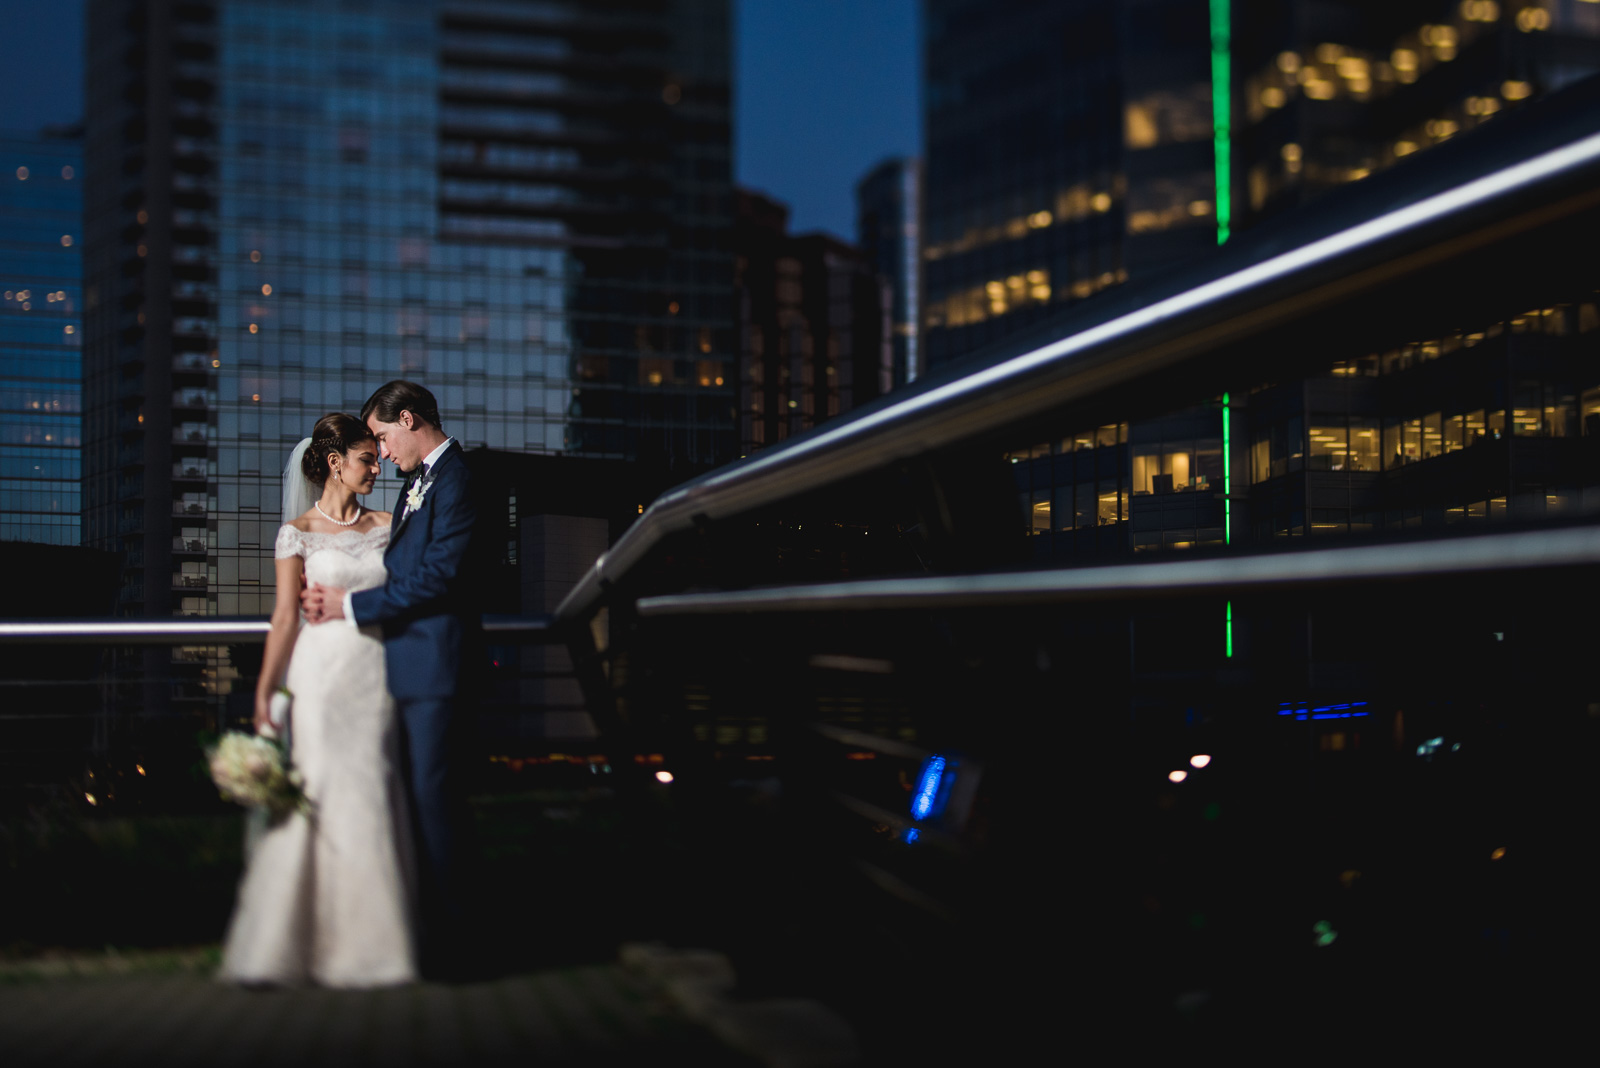 ^ Most of the weddings we shoot tend to be in outdoor natural spaces (which we love), so when we get the opportunity to shoot a wedding in the downtown core of Vancouver, it's a bit of a change of pace for us! For Pegah and Kyle's wedding, we pulled out the lighting equipment for some post-dinner sunset portraits. I love the tones of the city behind them in this one, the leading lines, and their intimate moment.